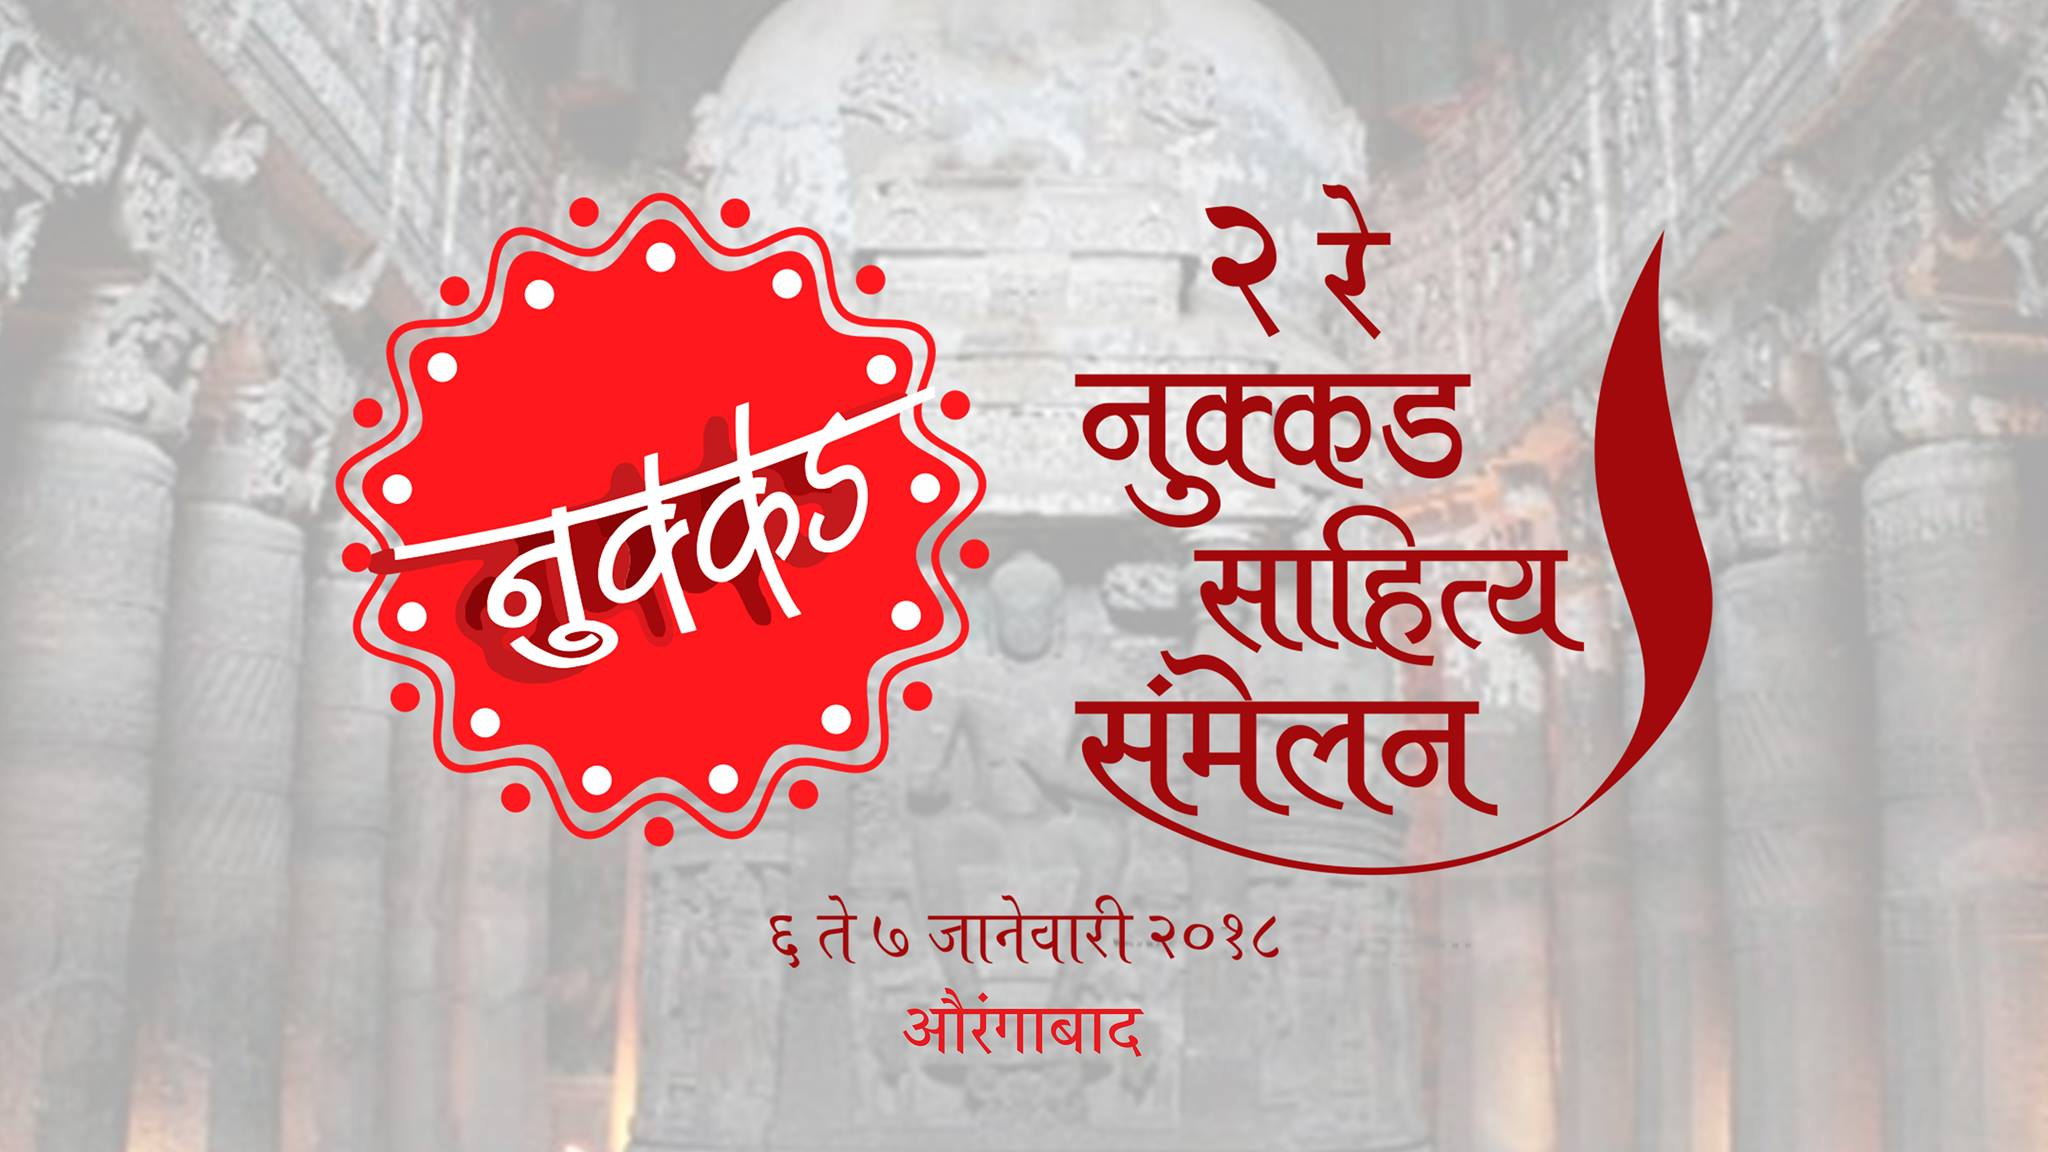 Buy Marathi Ebooks, Marathi Ebooks Online, Best Ebook Reader App